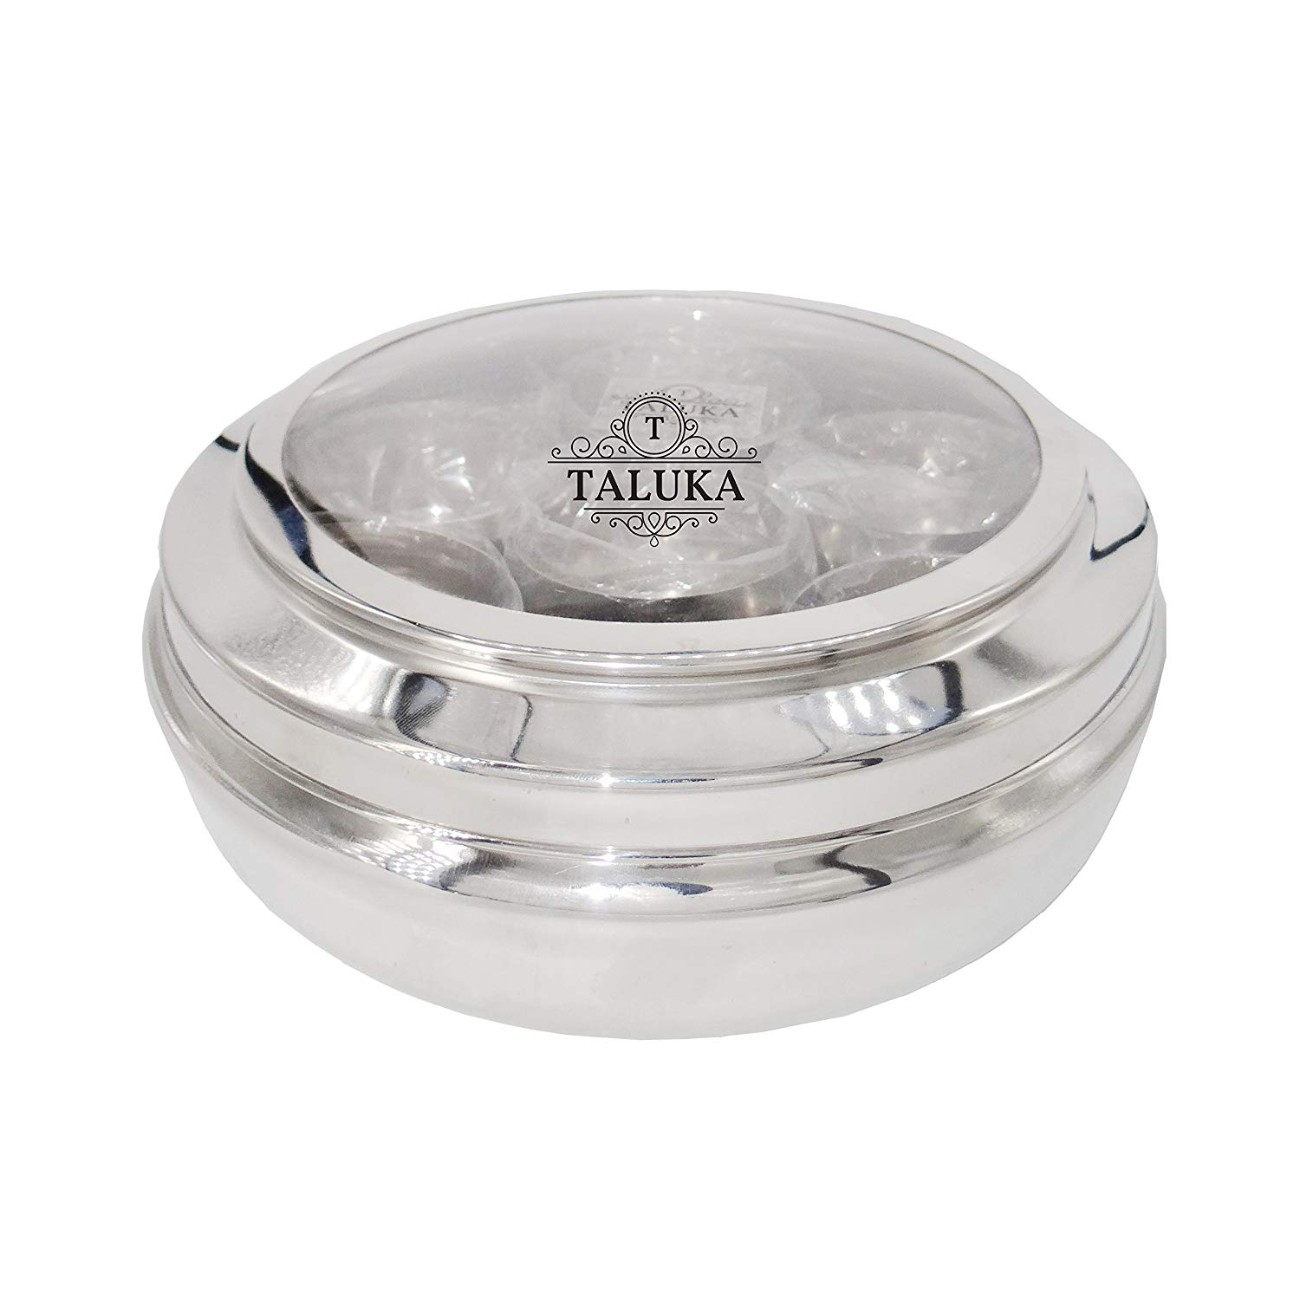 Stainless Steel Spice Box with Lid, 7 Containers and 1 Spoon